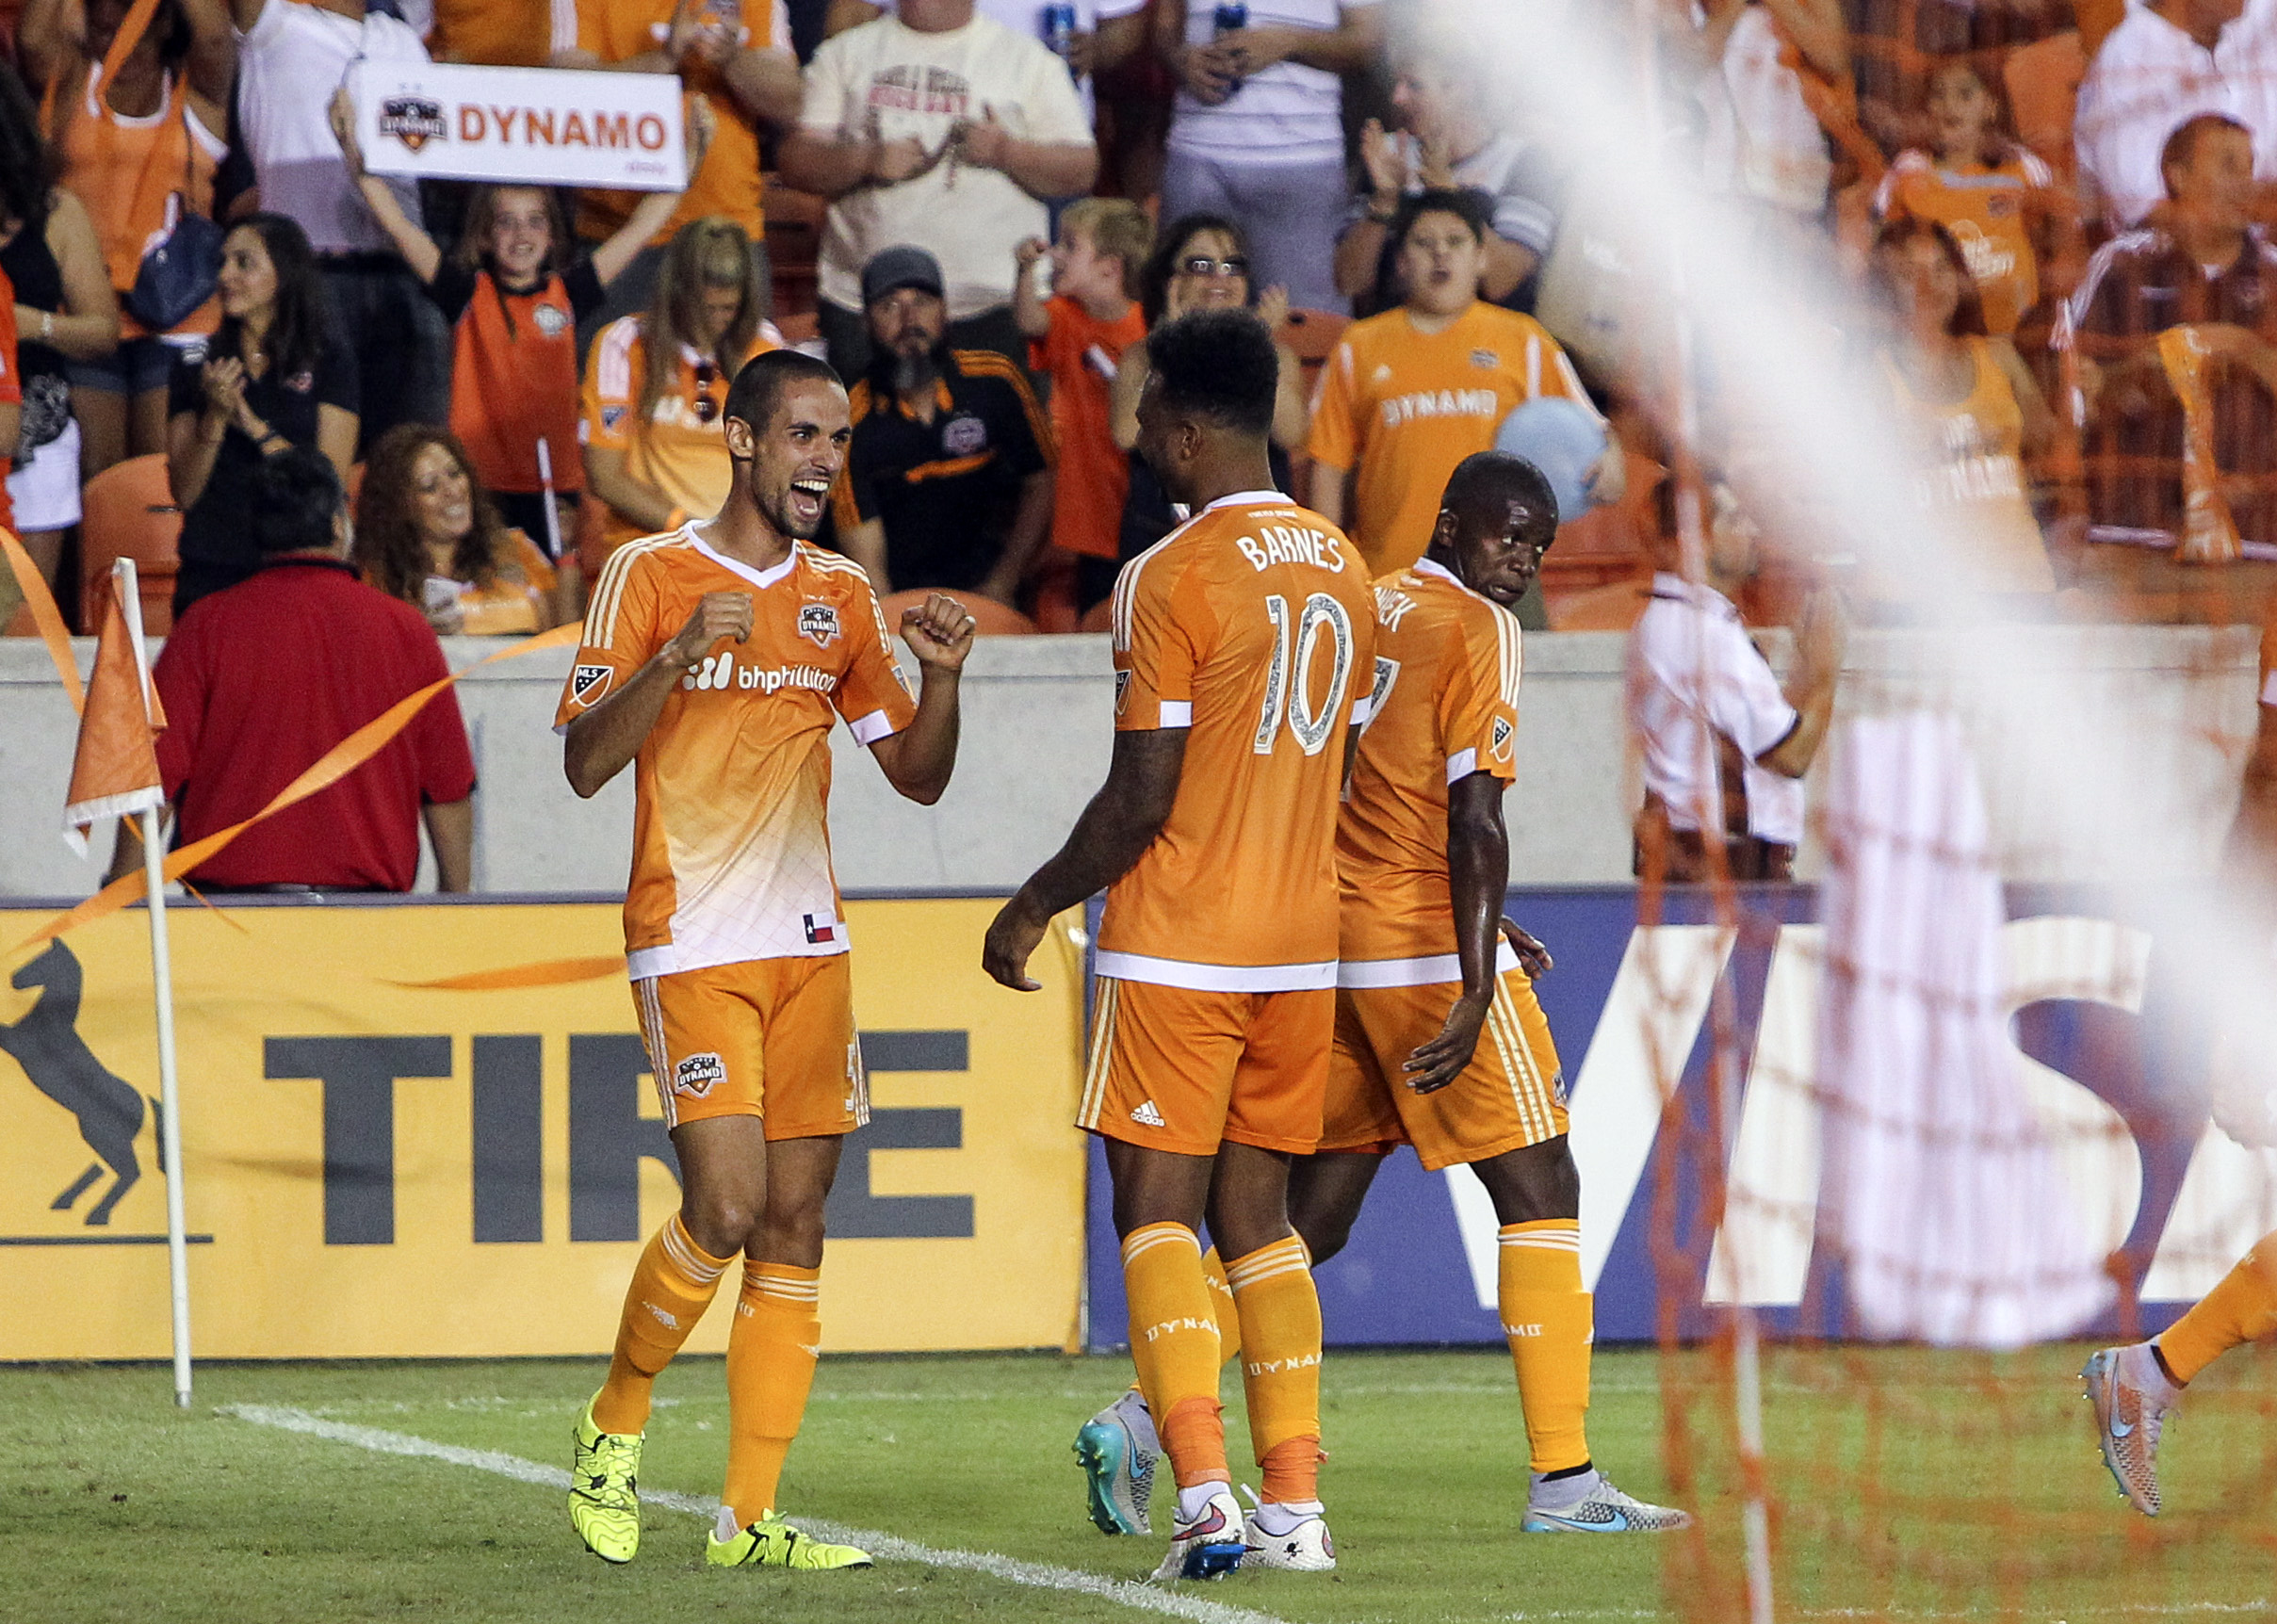 Raul Rodriguez (left) finished off the Dynamo win over Vancouver in style.